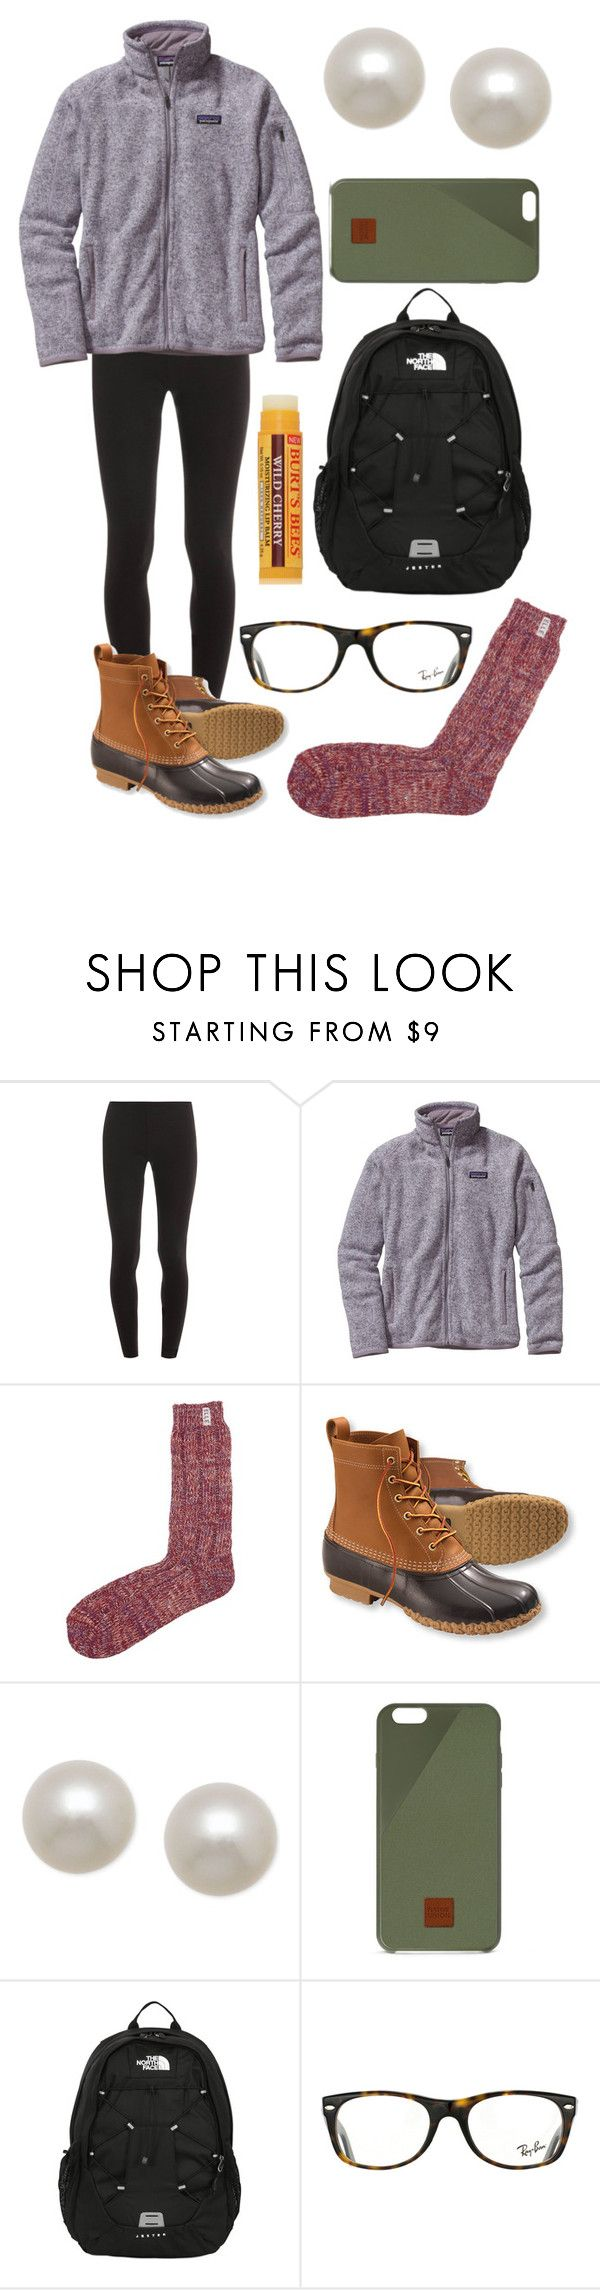 """CCD today"" by emmacaseyyyy ❤ liked on Polyvore featuring mode, Splendid, Patagonia, Elle, L.L.Bean, Honora, Native Union, The North Face, Ray-Ban en Burt's Bees"